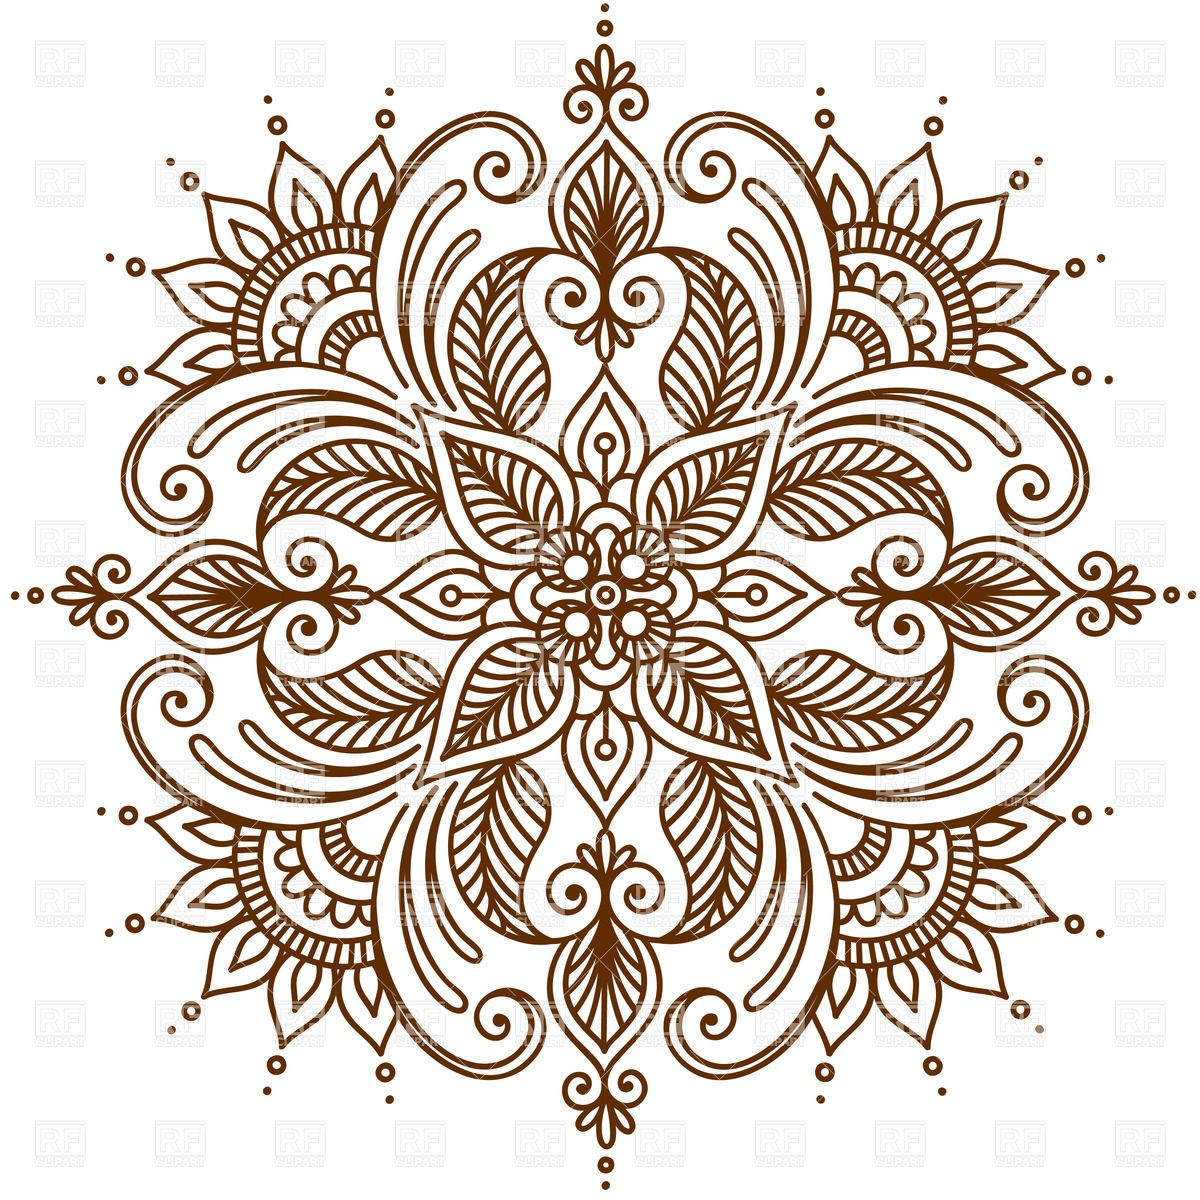 Round Mehndi Element Ornament Vector Image Vector Illustration Of